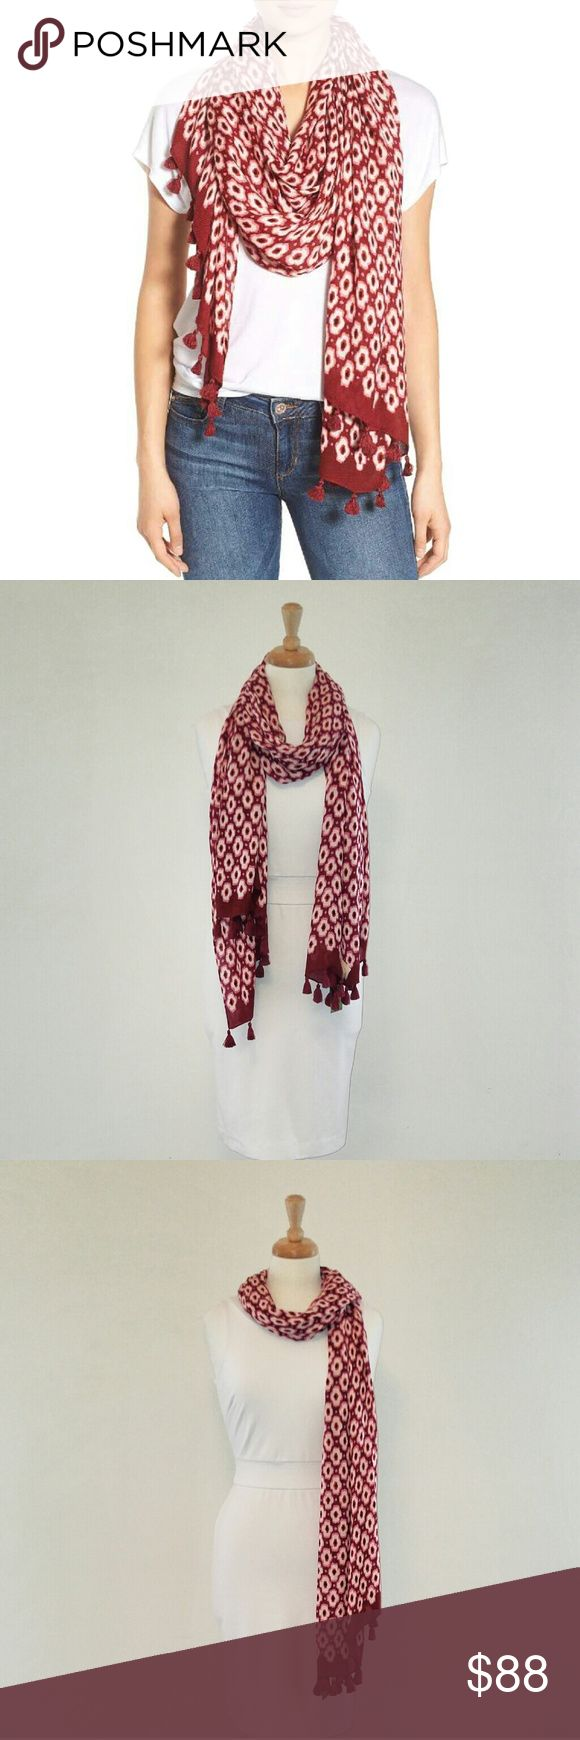 New! Kate Spade Scarf Red Burgundy Extra Large Brand new with tags! This is the beautiful Posy Ikat Oblong Tassel Scarf by designer Kate Spade New York in red chestnut burgundy with tassel edges made of soft comfortable 100% viscose measuring at a generous extra large size 80 x 30 inches this scarf is made of a natural imported flowy fabric and has fabric imperfections throughout. Perfect year round as a scarf, wrap, cape or swimsuit wrap cover up at the pool this Kate Spade style statement…